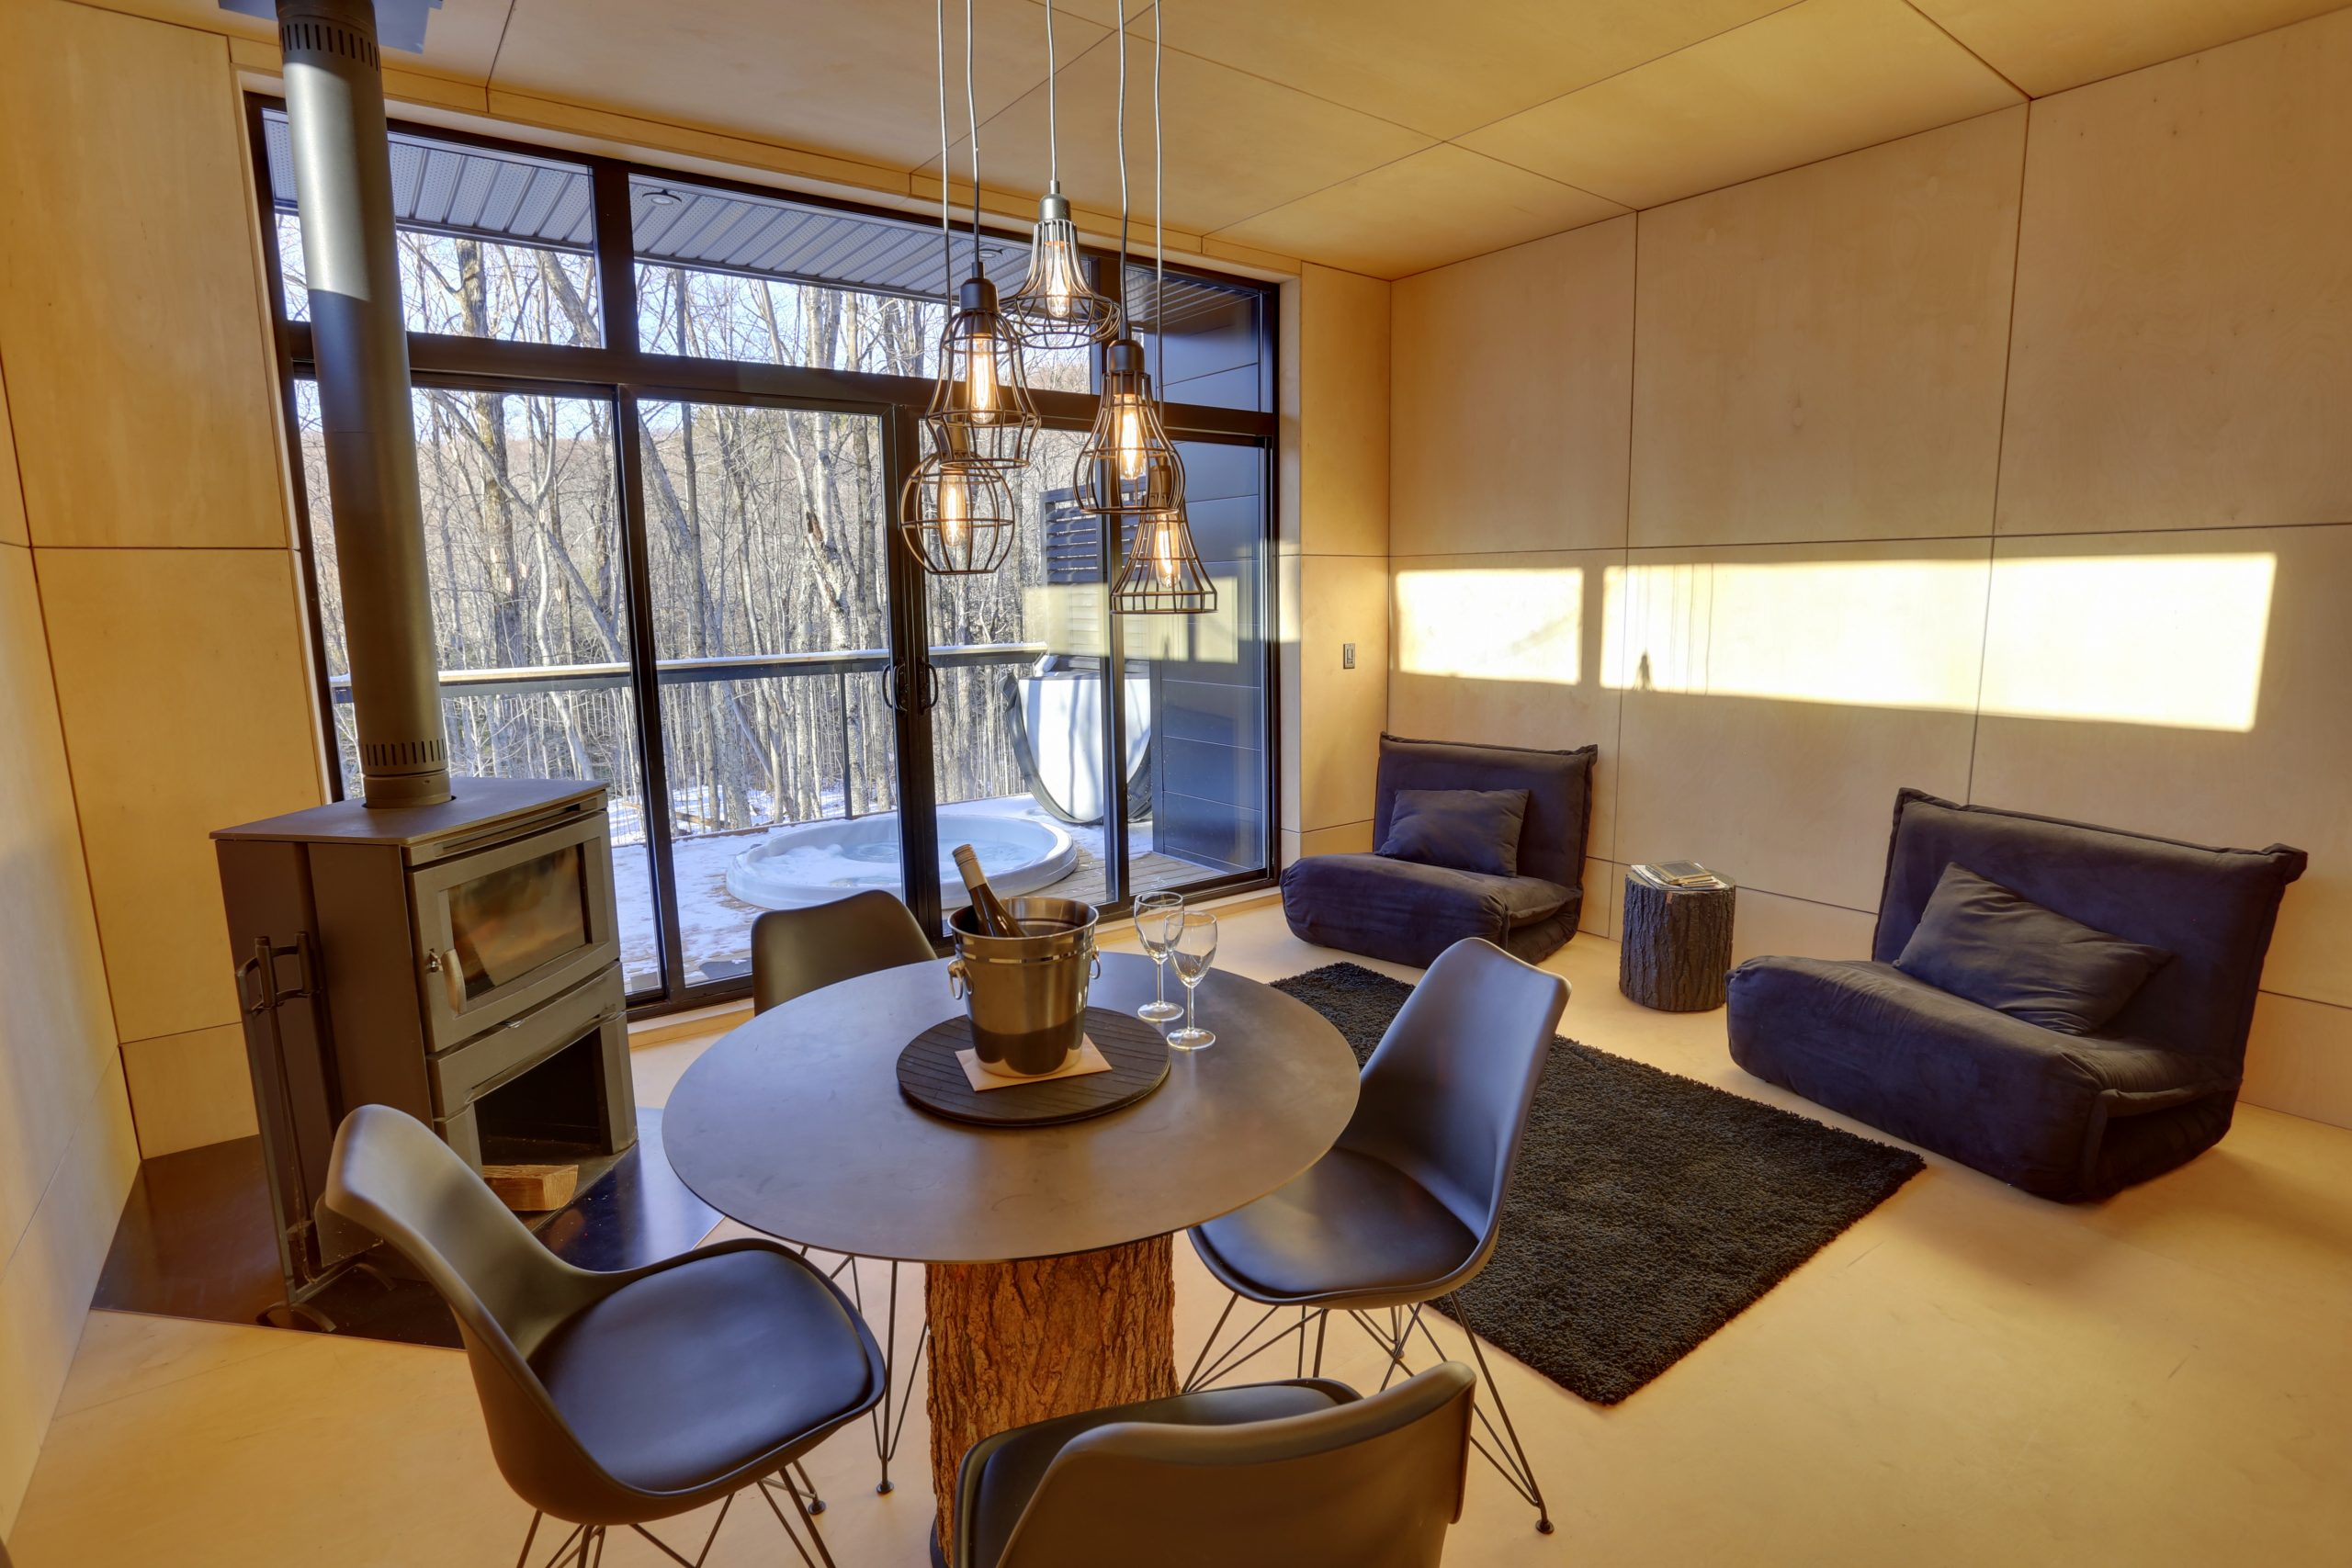 Cottages for rent for 4 people in Quebec #8